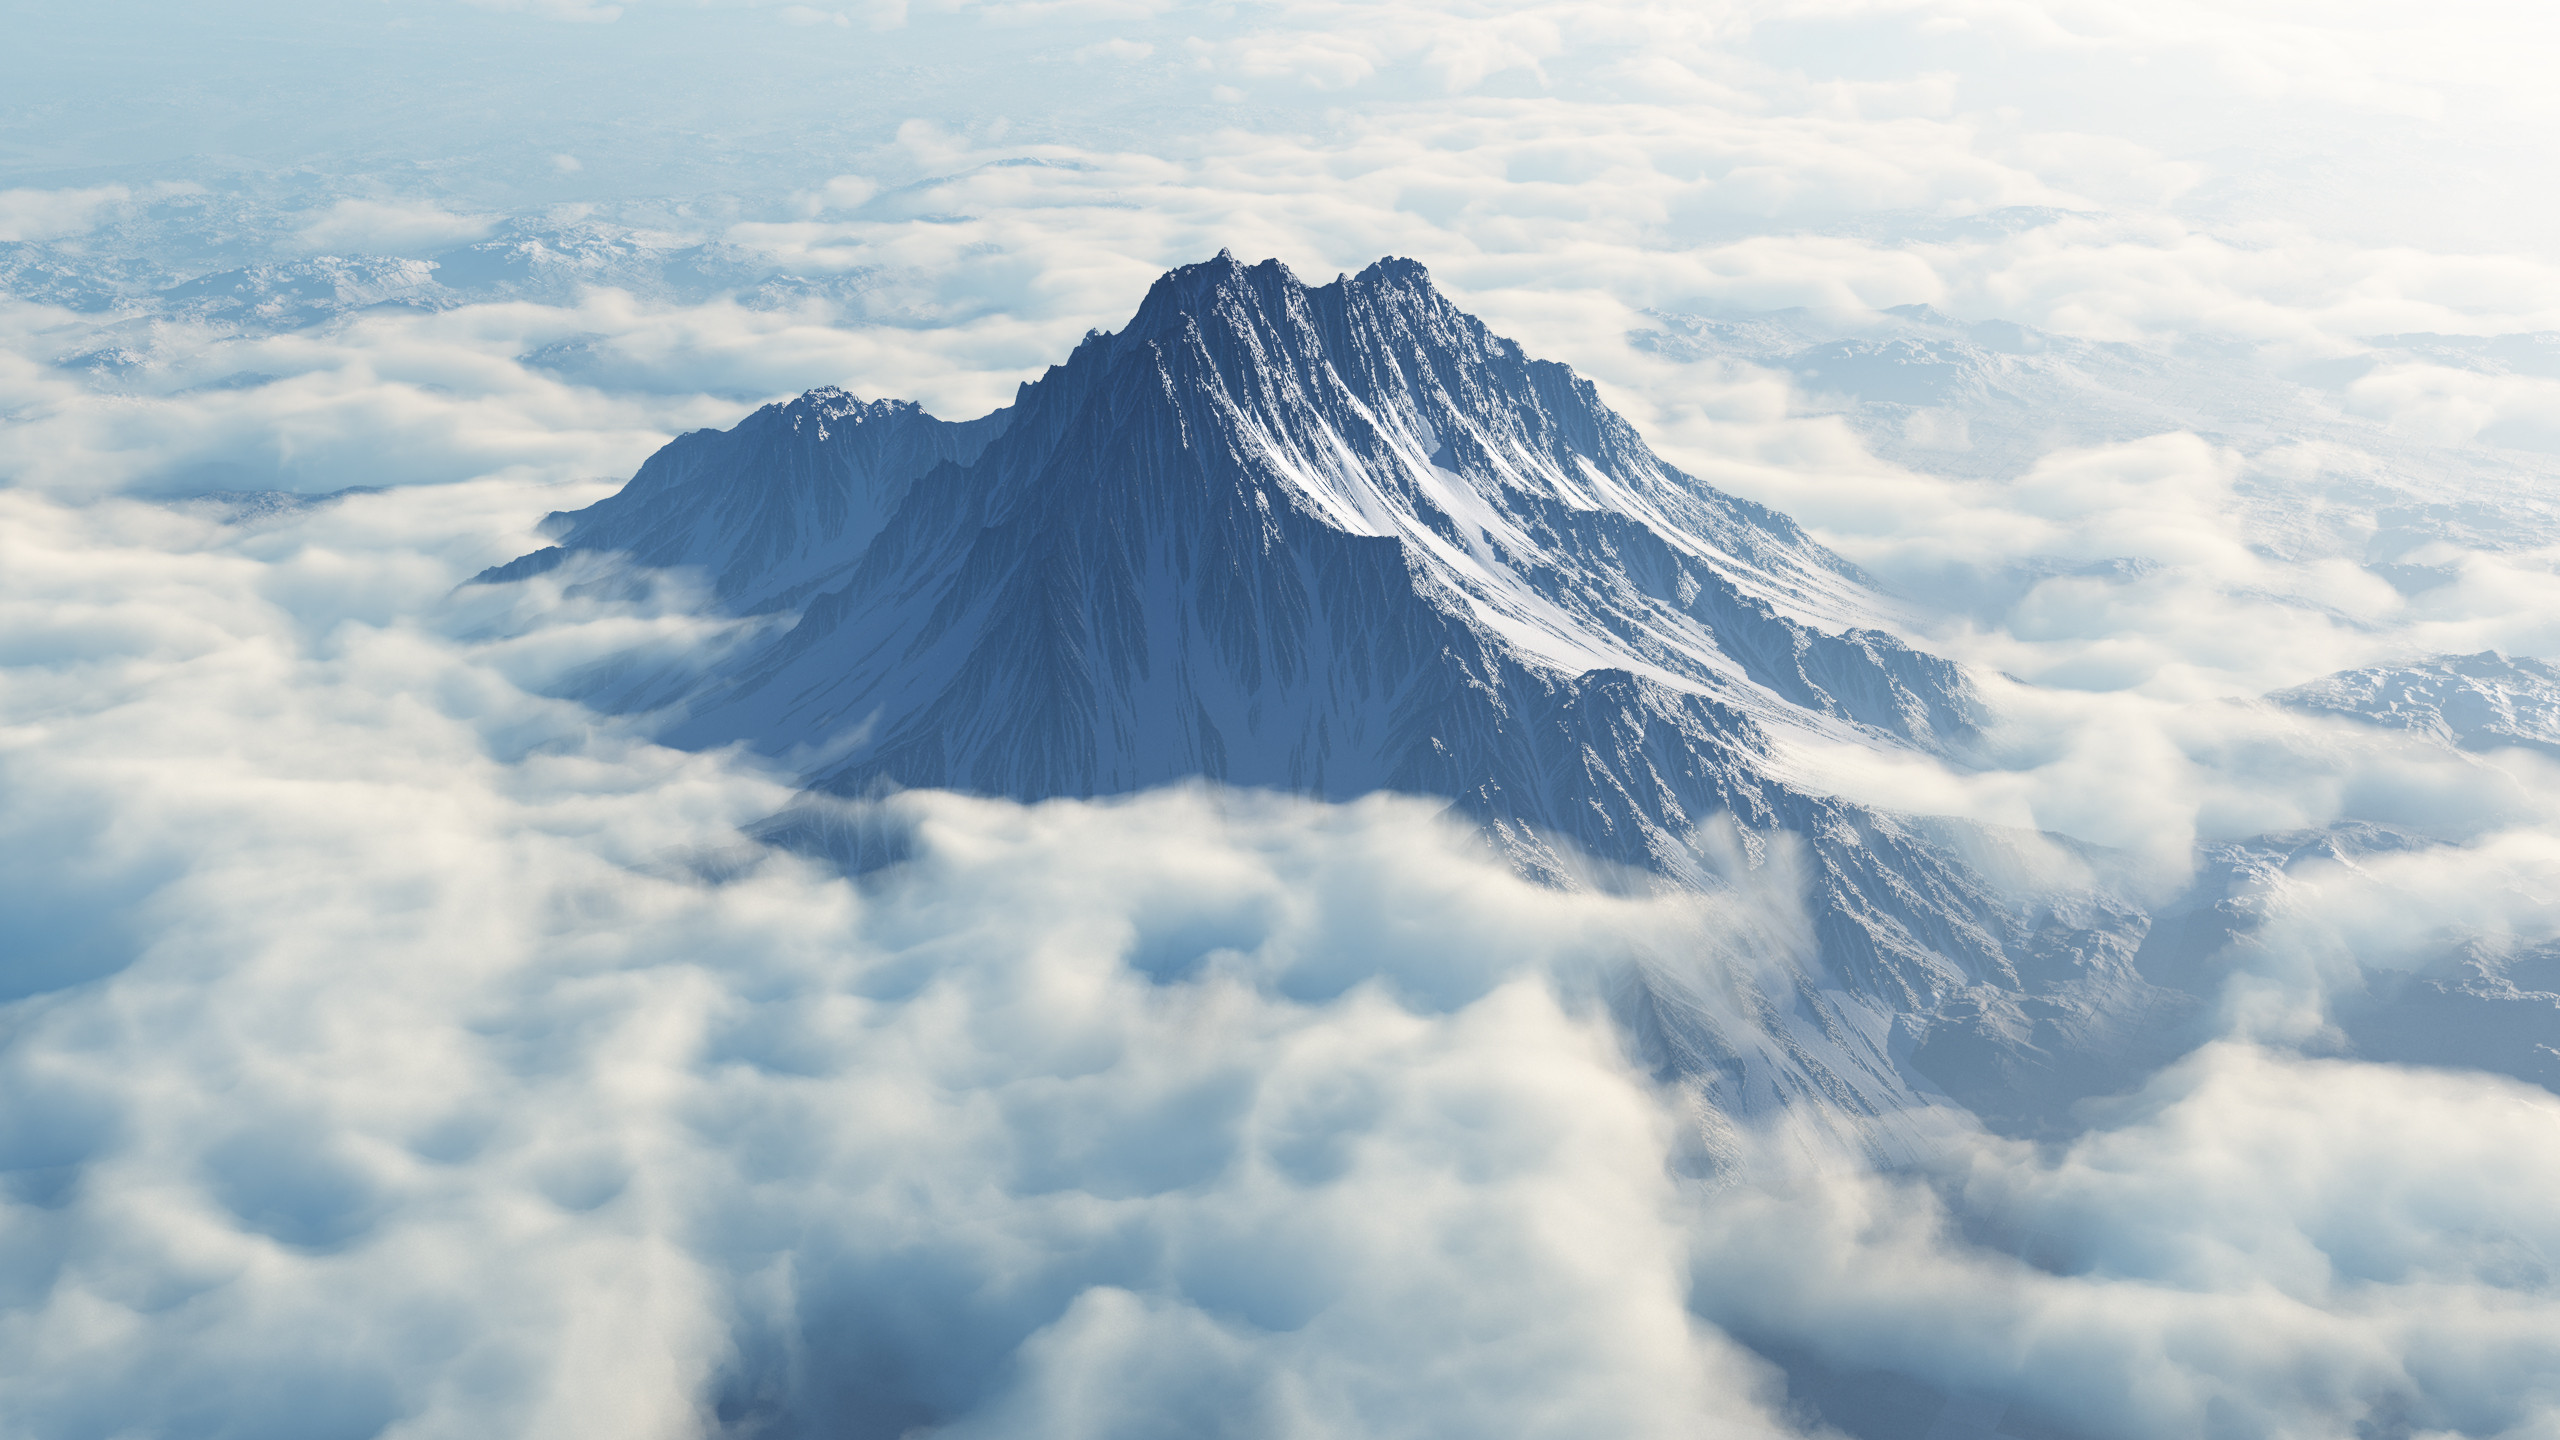 15 Best HD Mount Olympus Wallpapers 2560x1440